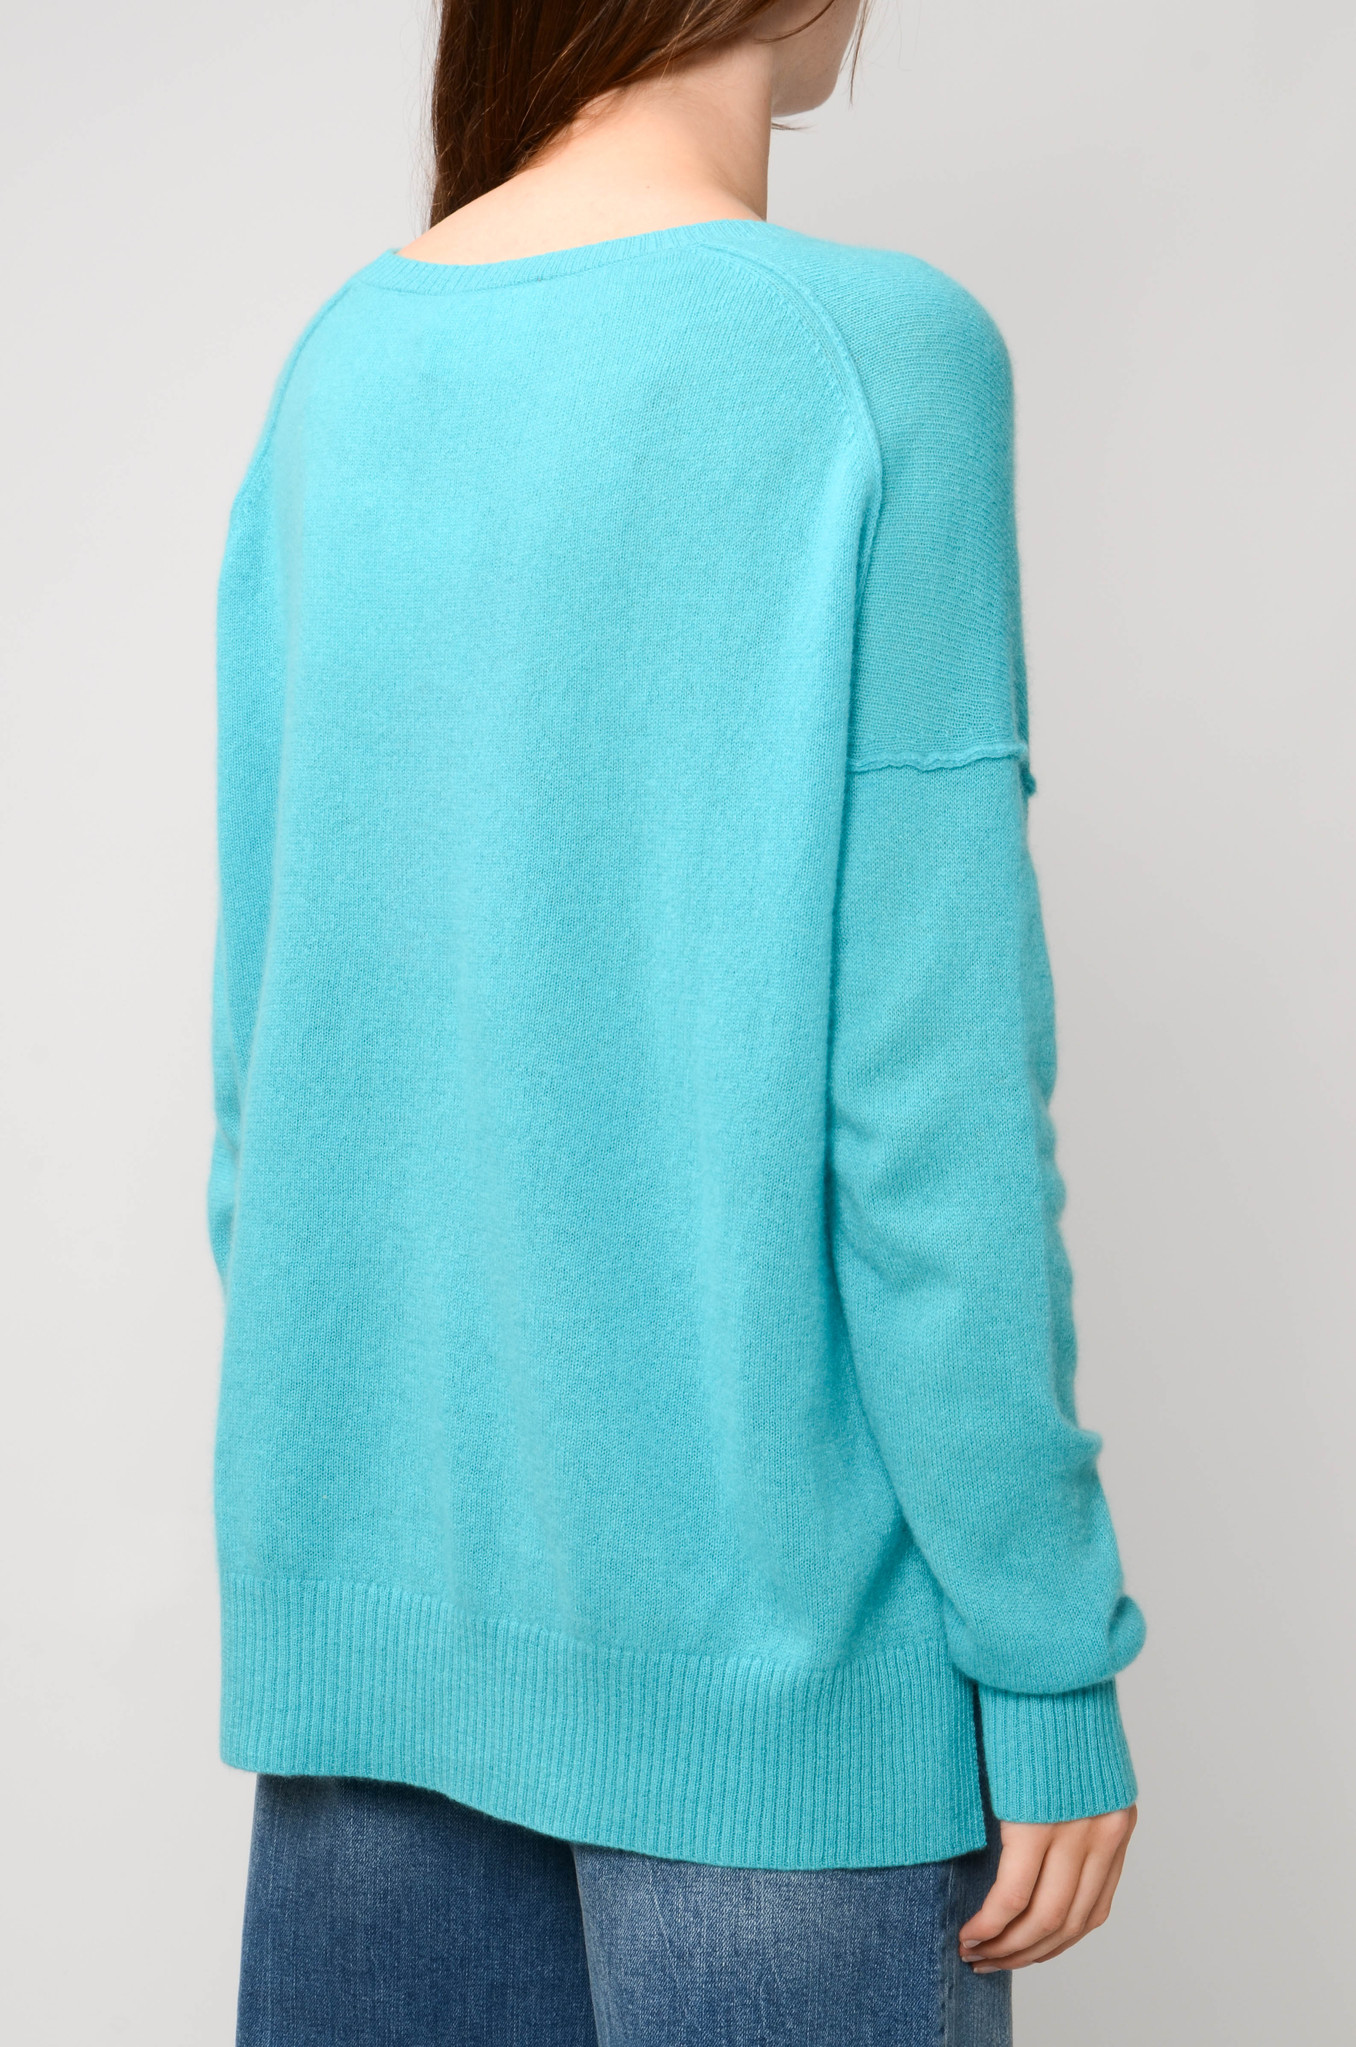 KENZA SWEATER IN TURQUOISE-4